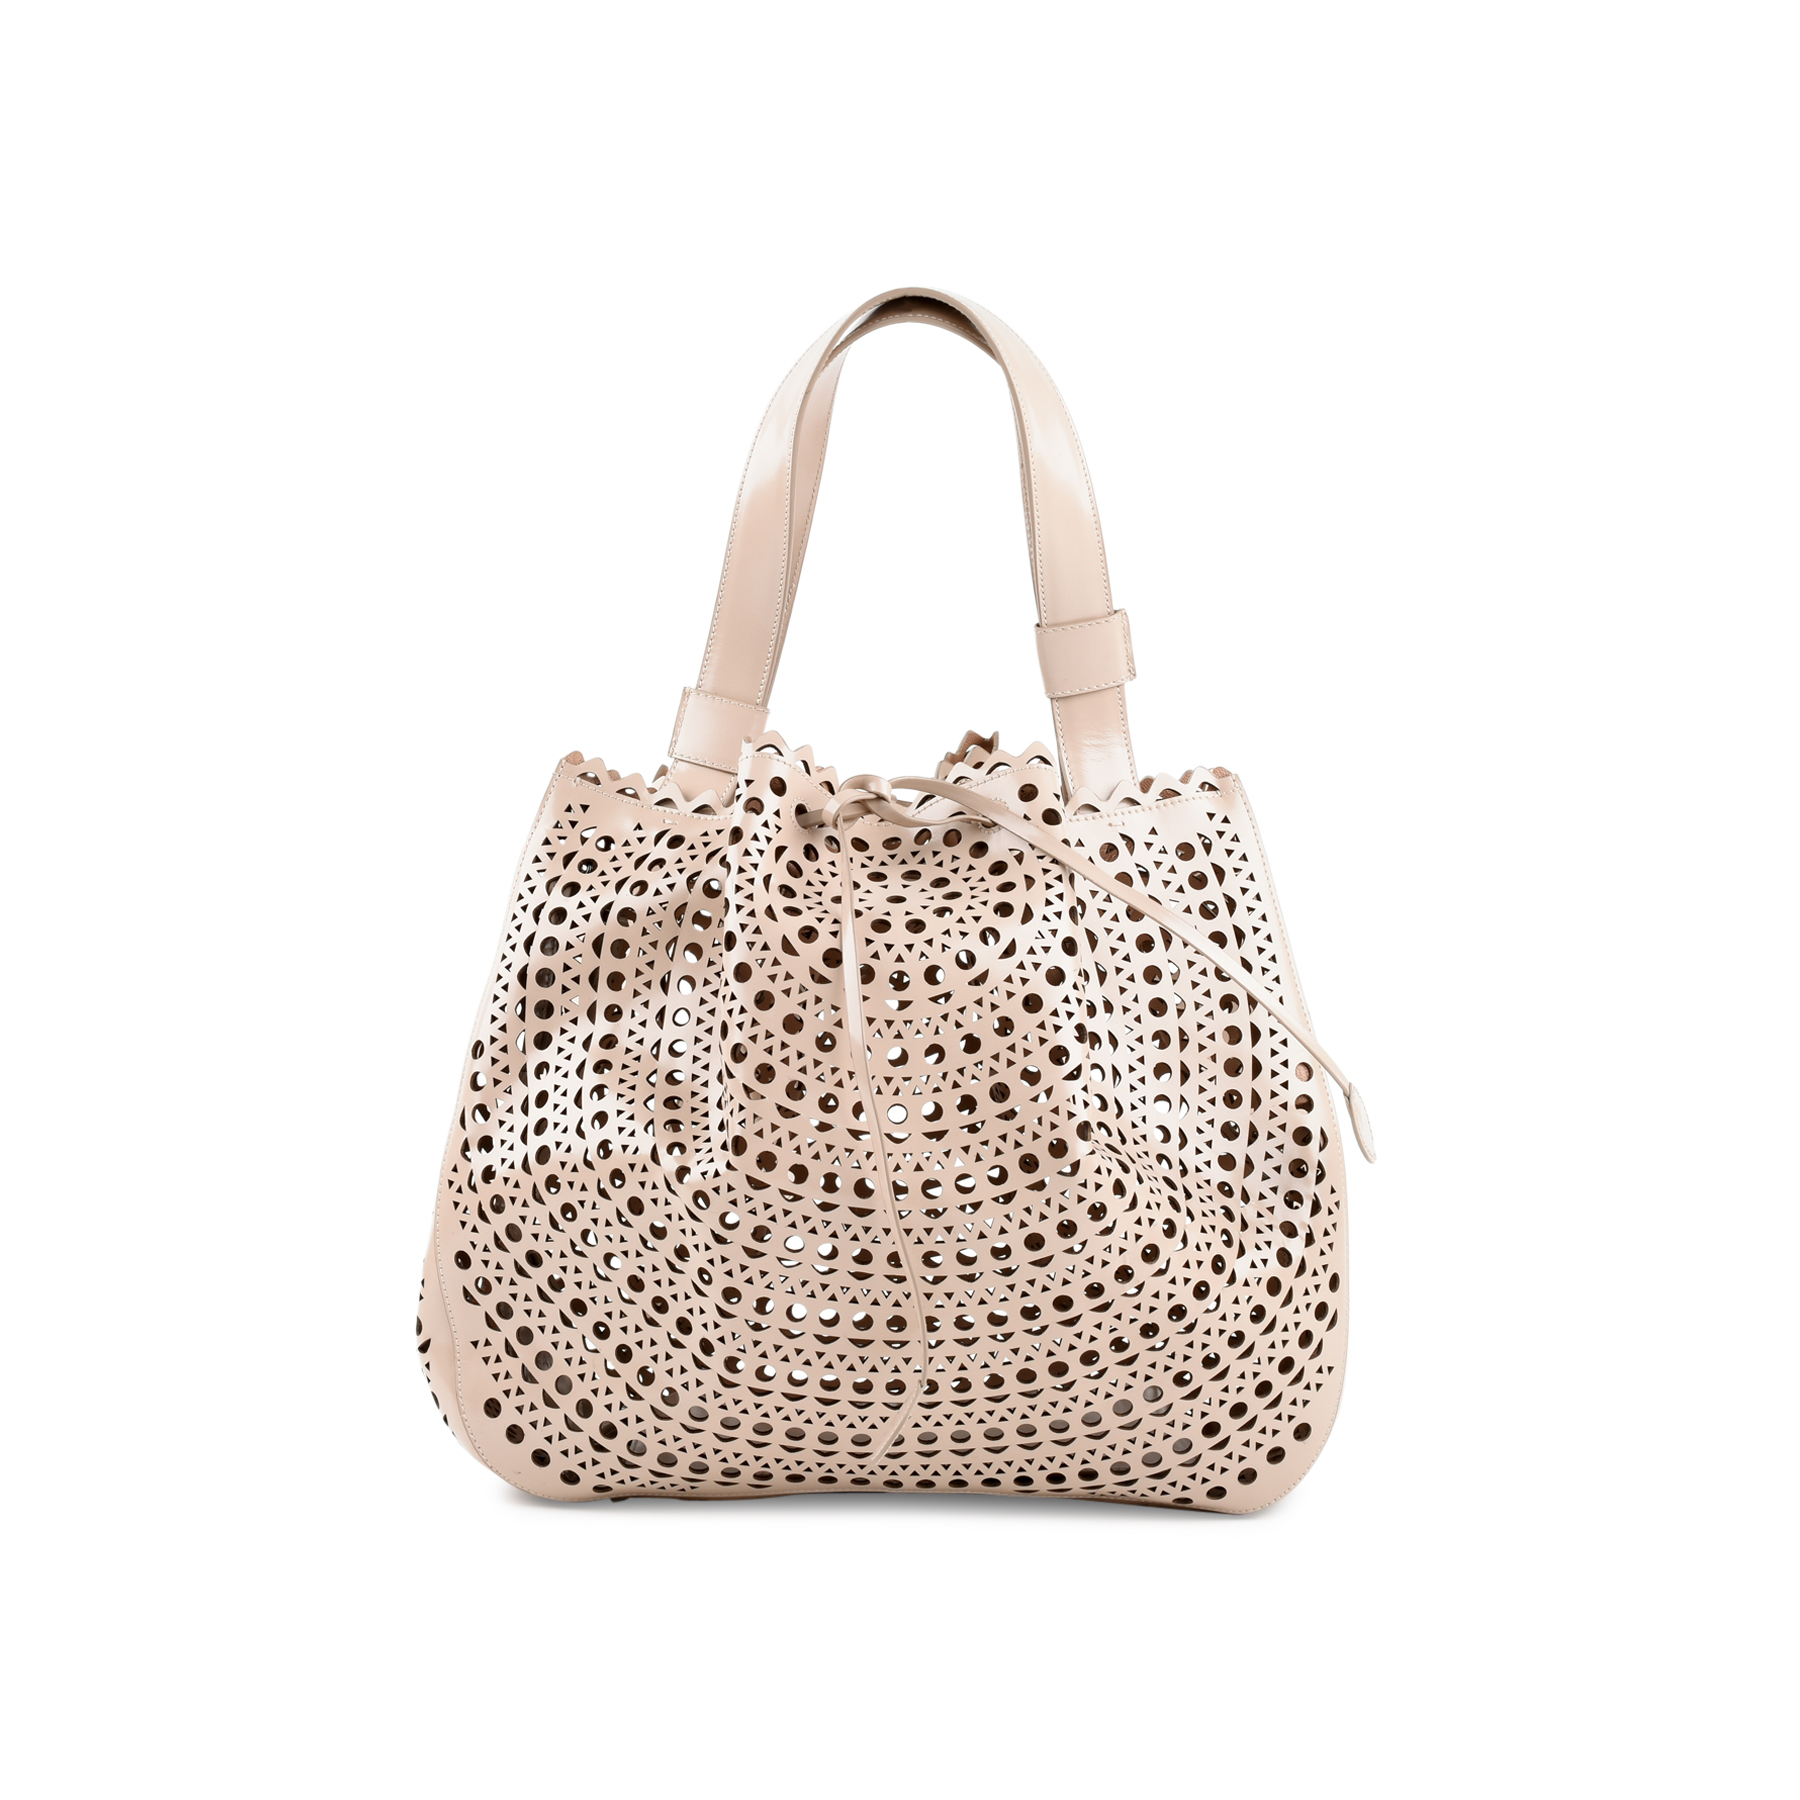 f31712511 Authentic Second Hand Azzedine Alaïa Laser-Cut Tote Bag (PSS-470-00010) -  THE FIFTH COLLECTION